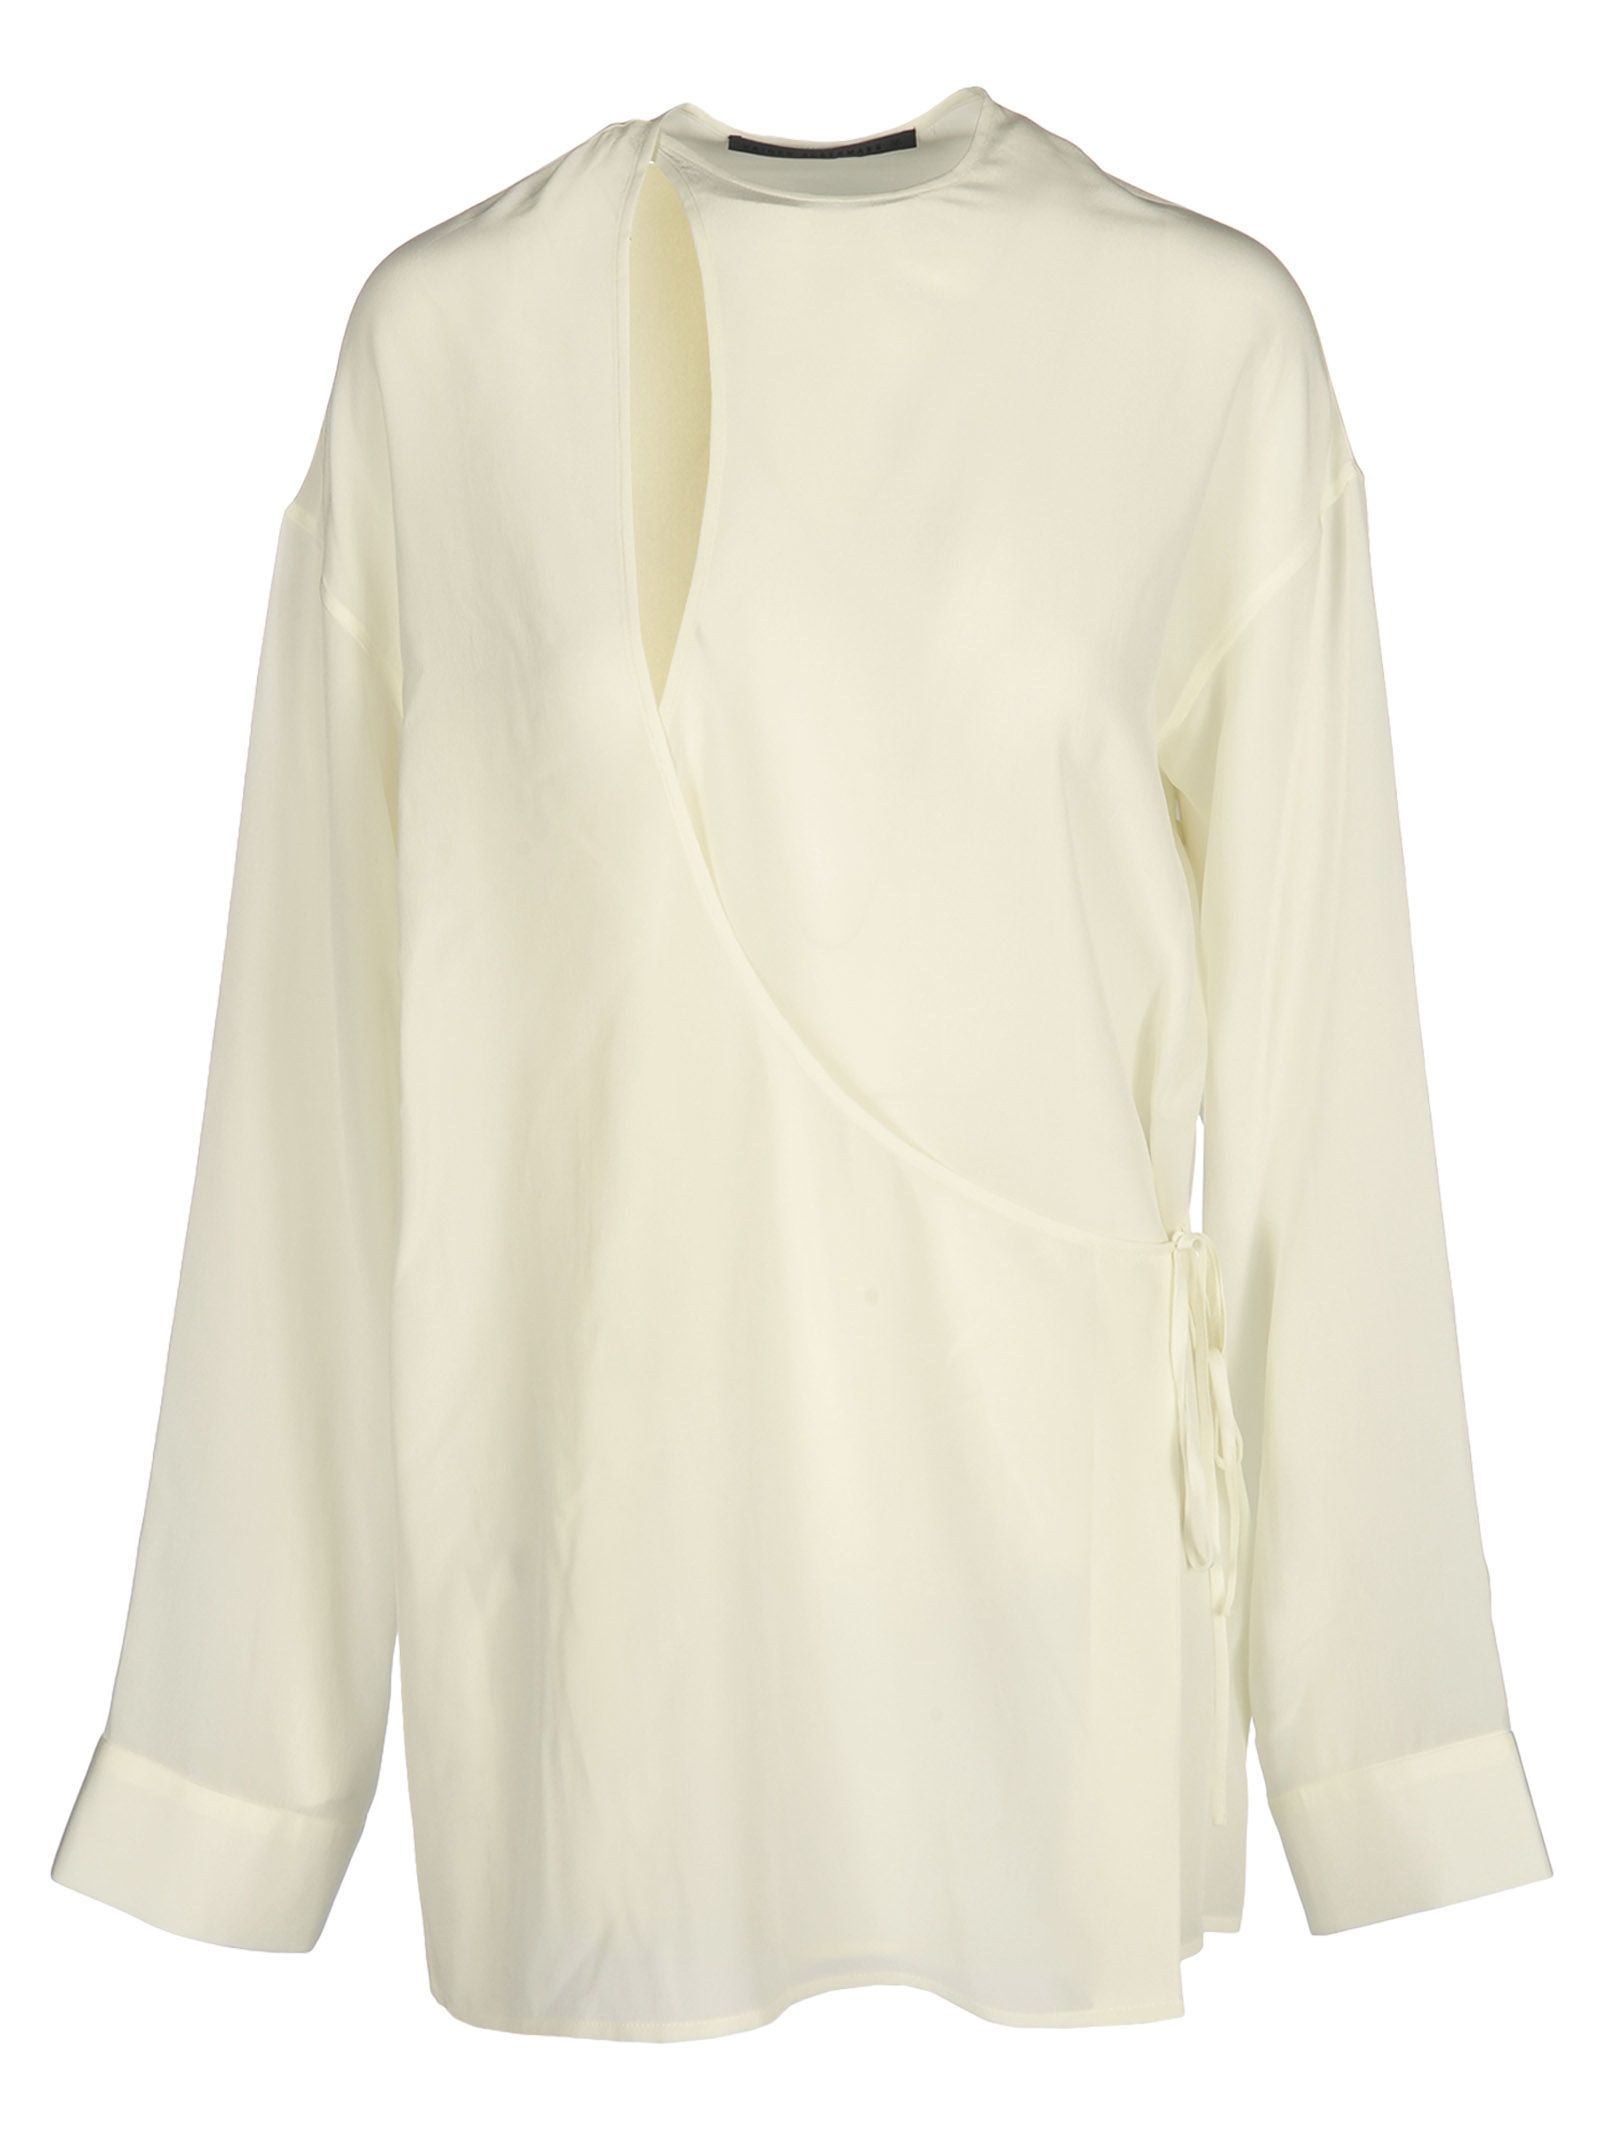 Haider Ackermann Shirt